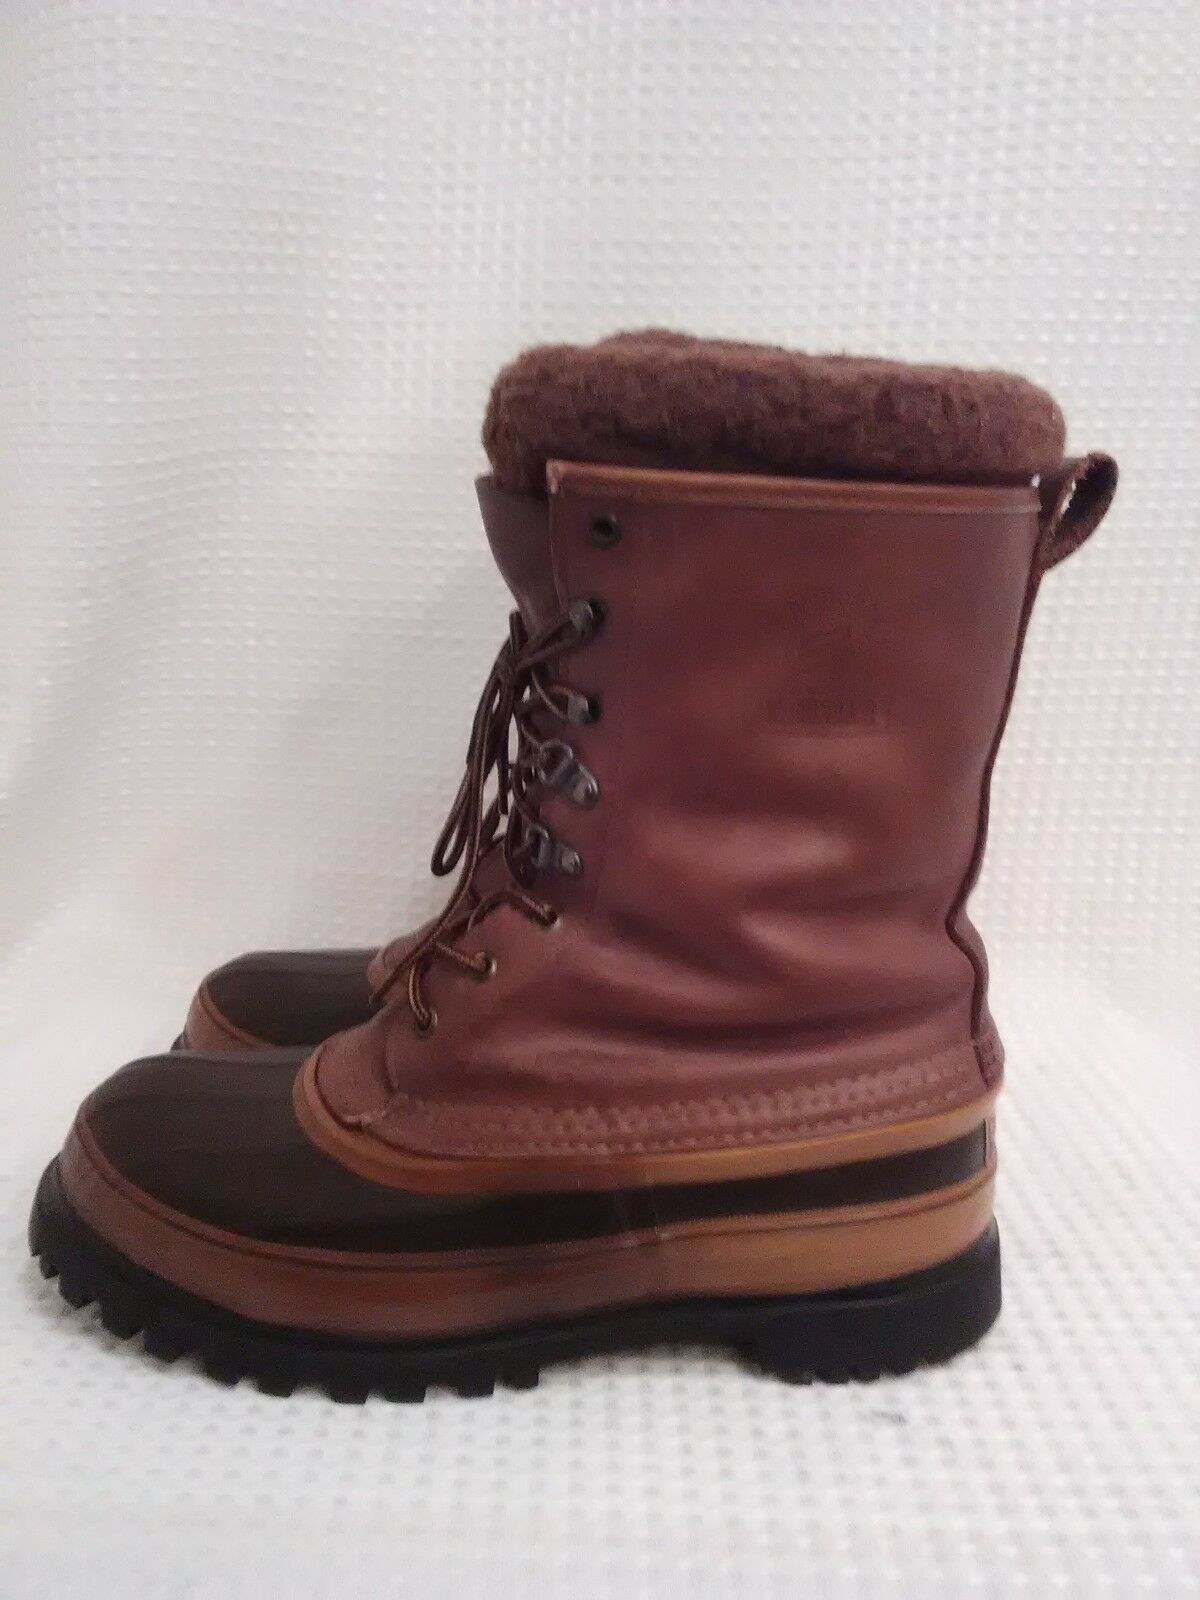 Lacrosse Anaconda II Rubber & Leather Insulated Hunting Boots Mens 8 USA Made.